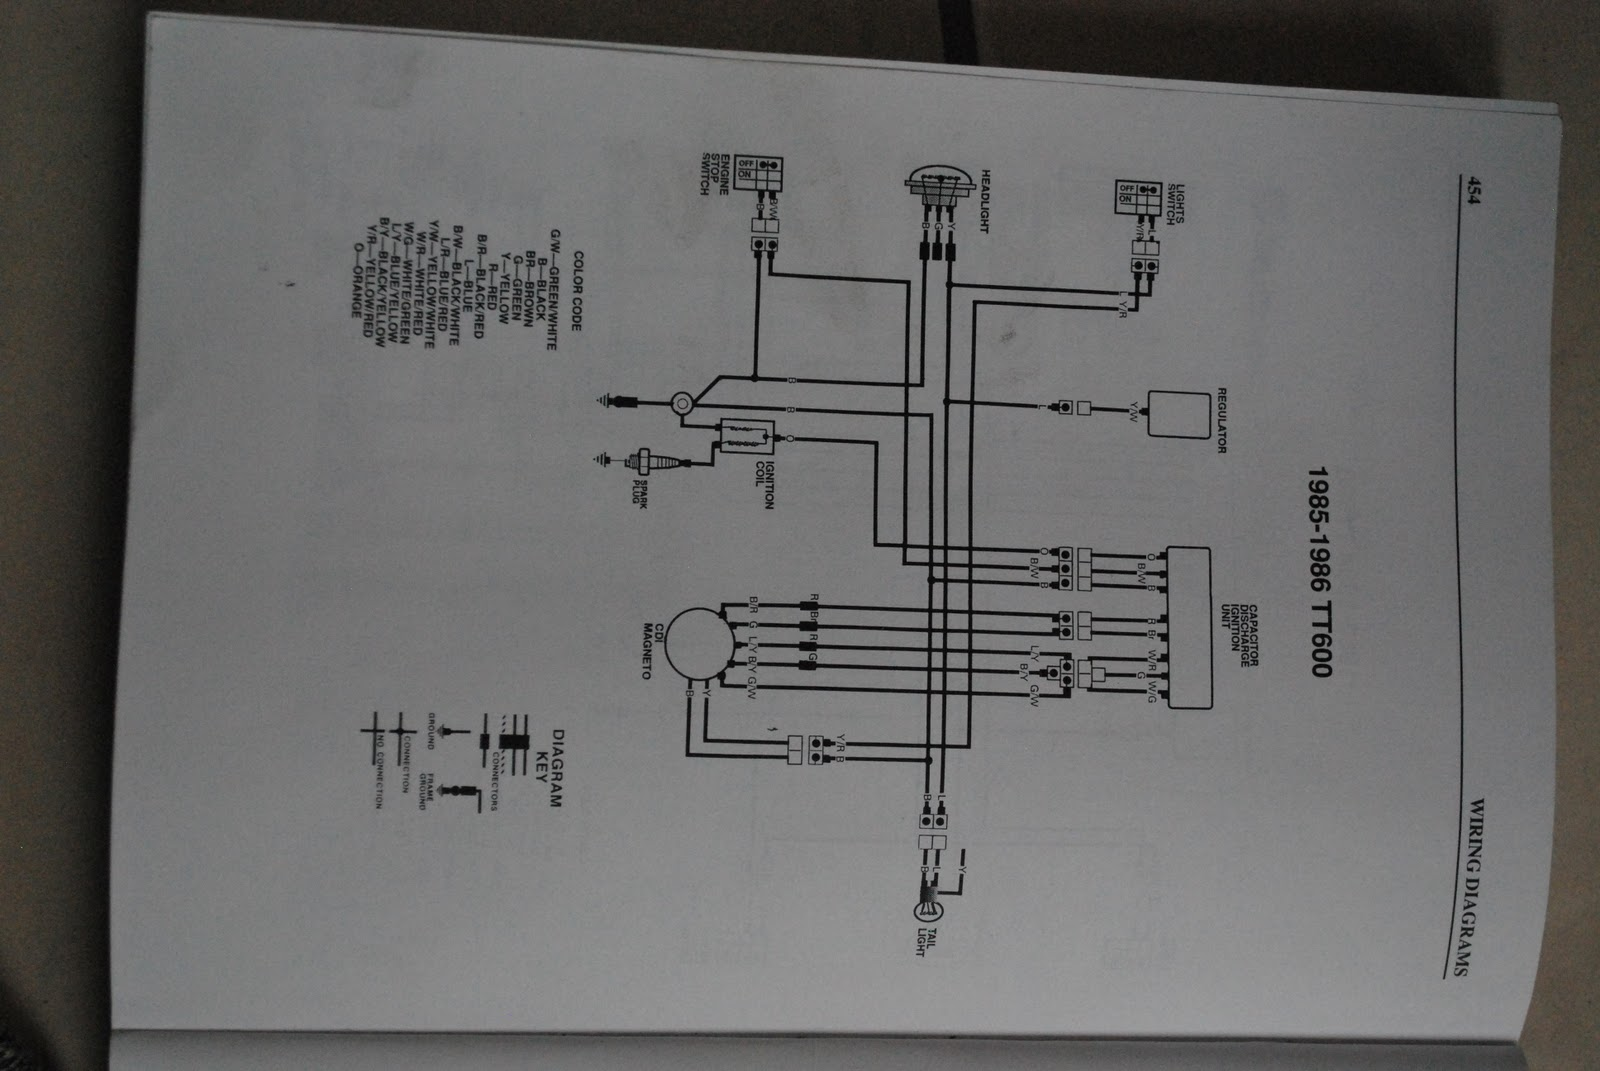 Wiring Diagram Together With Klr 650 Wiring Diagram On Pioneer Wiring